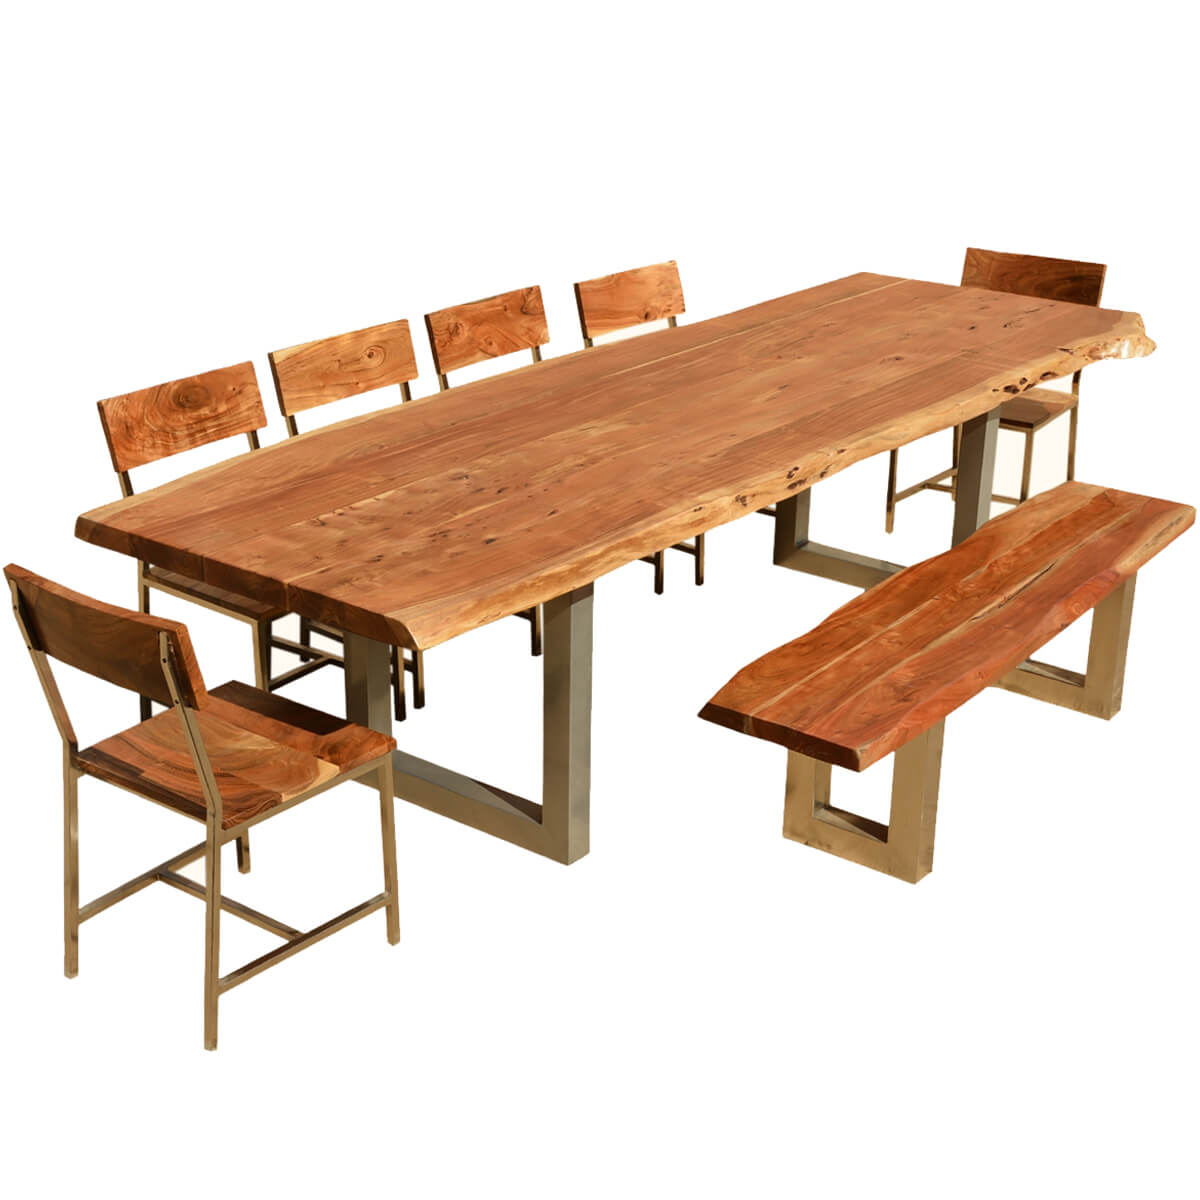 Cool 117 Live Edge Dining Table W 6 Chairs Bench Acacia Wood Iron Pdpeps Interior Chair Design Pdpepsorg